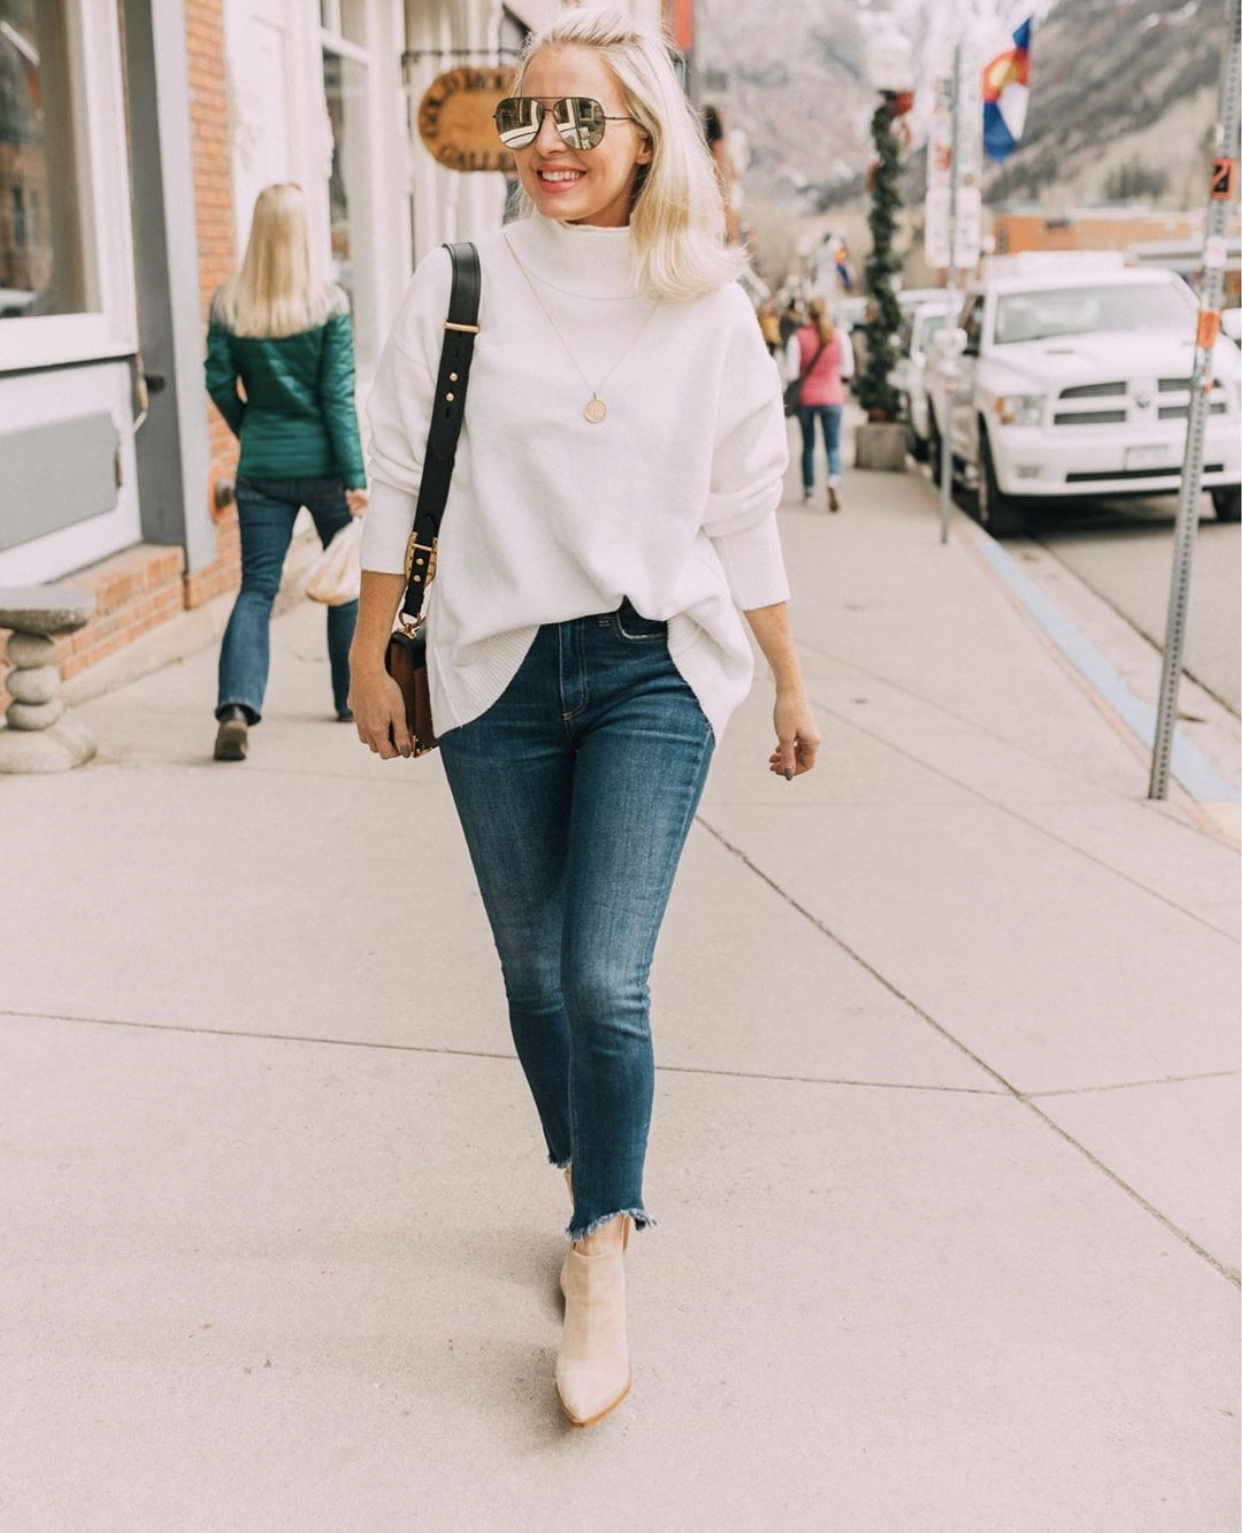 Women's fashion blogger, Erin Busbee, shares 5 fashion tips for women over 40 and wears a half tuck shirt